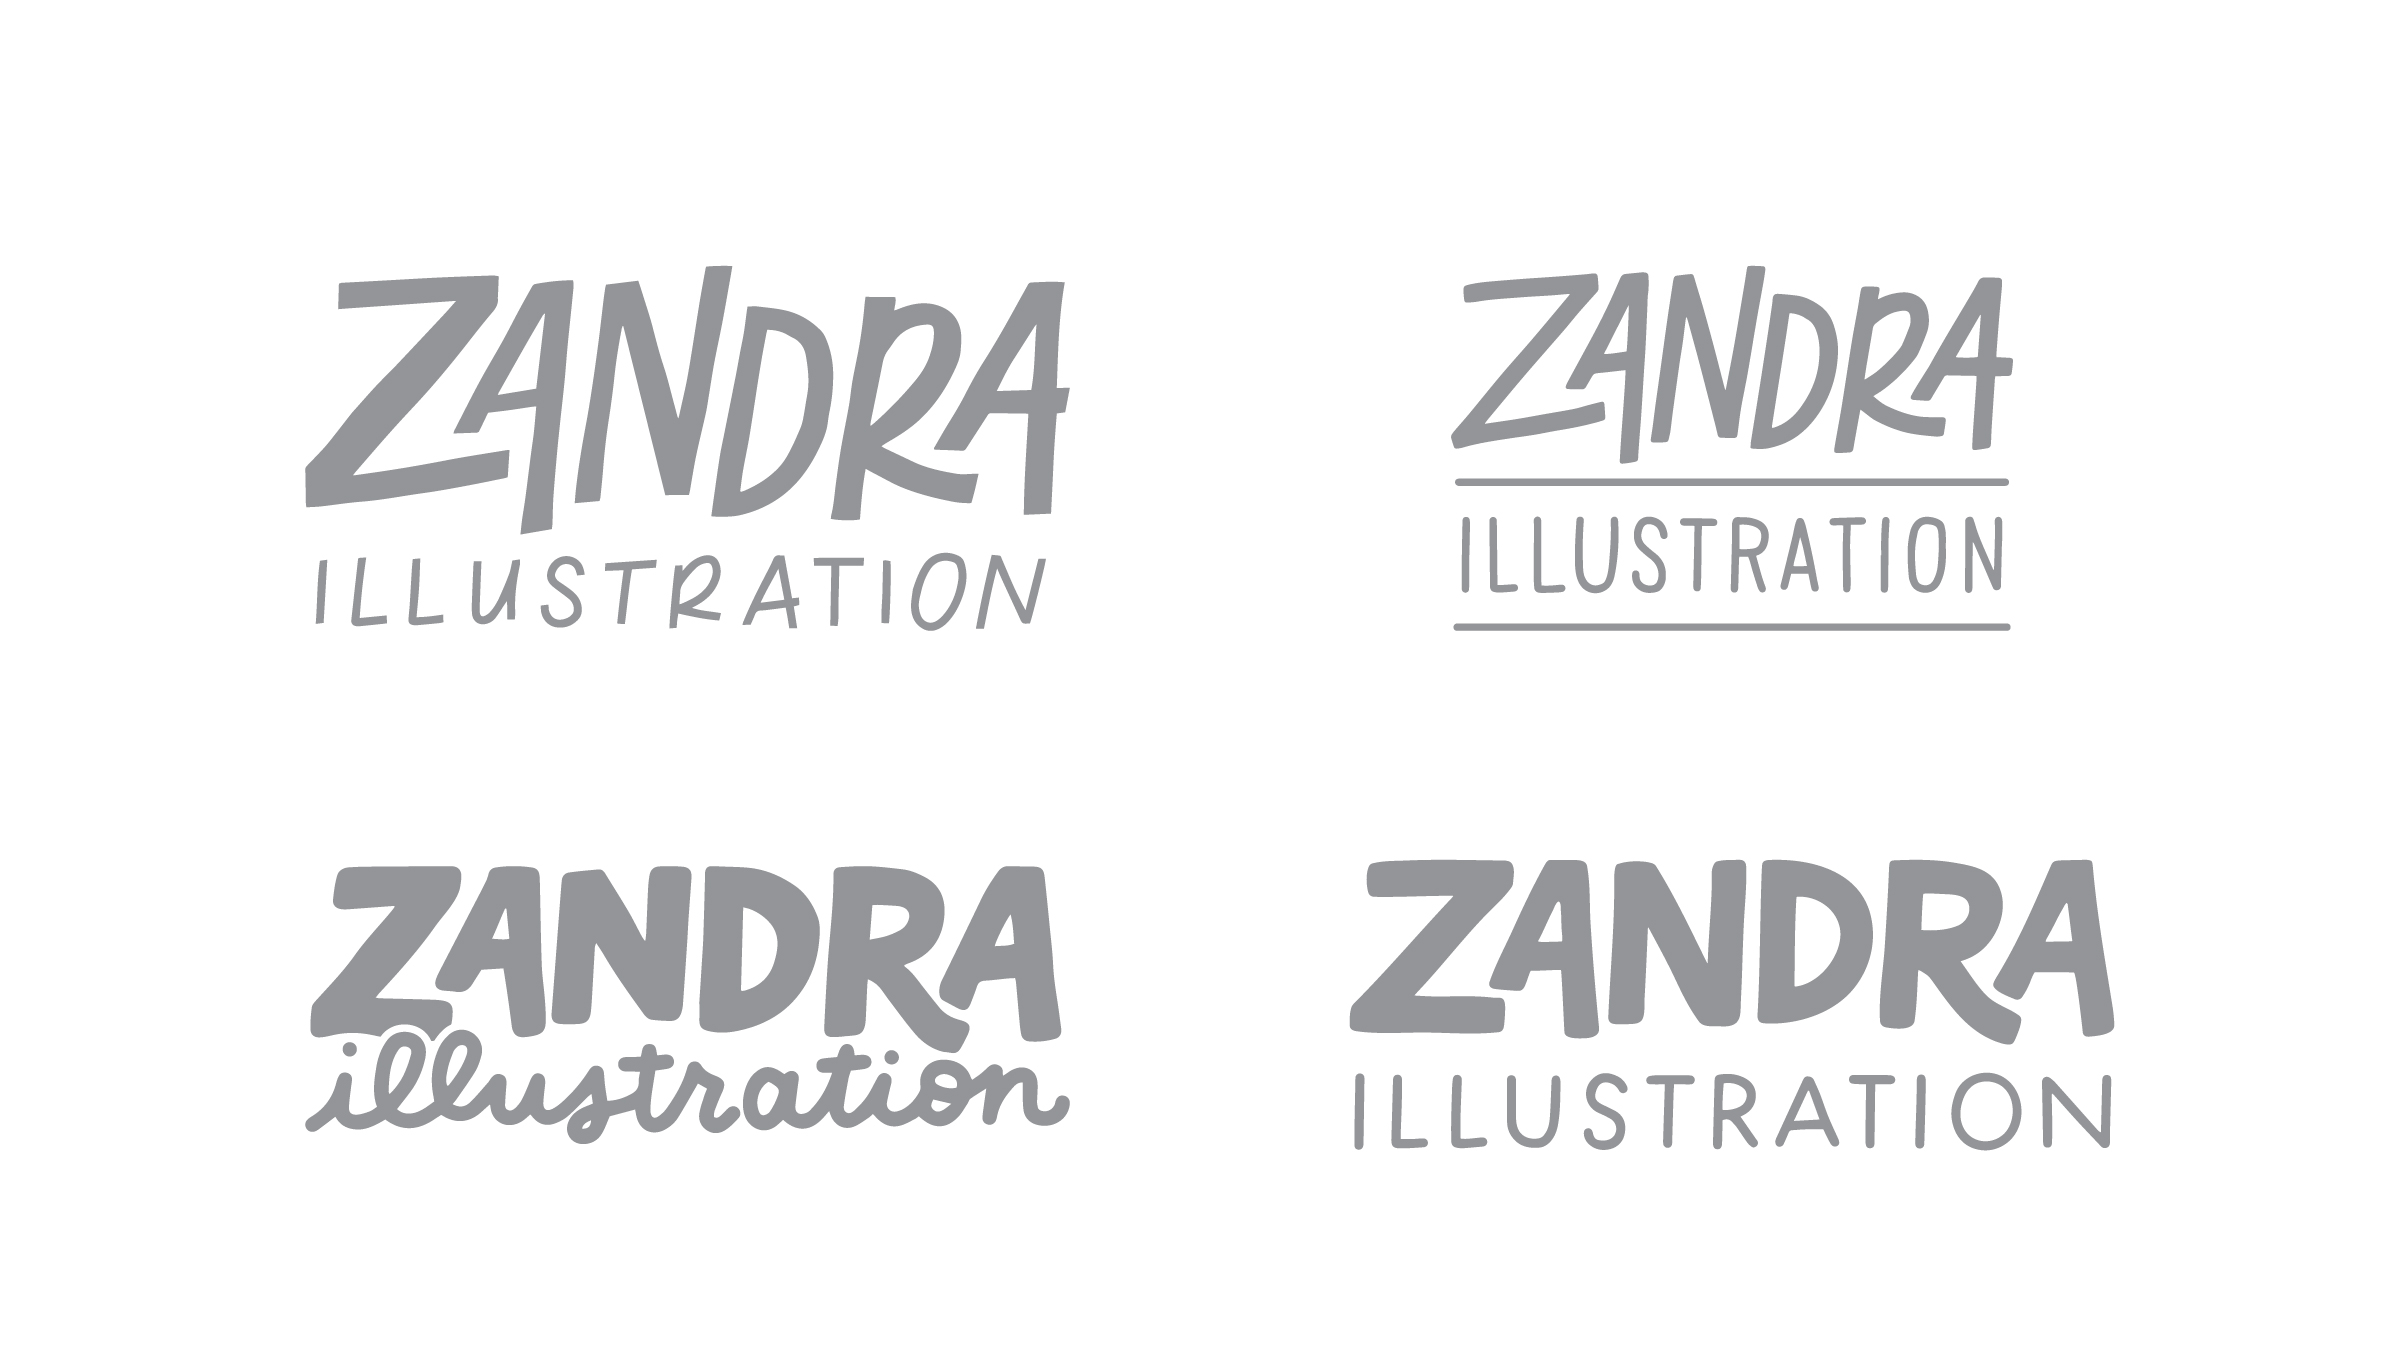 Zandra Illustration - The Process